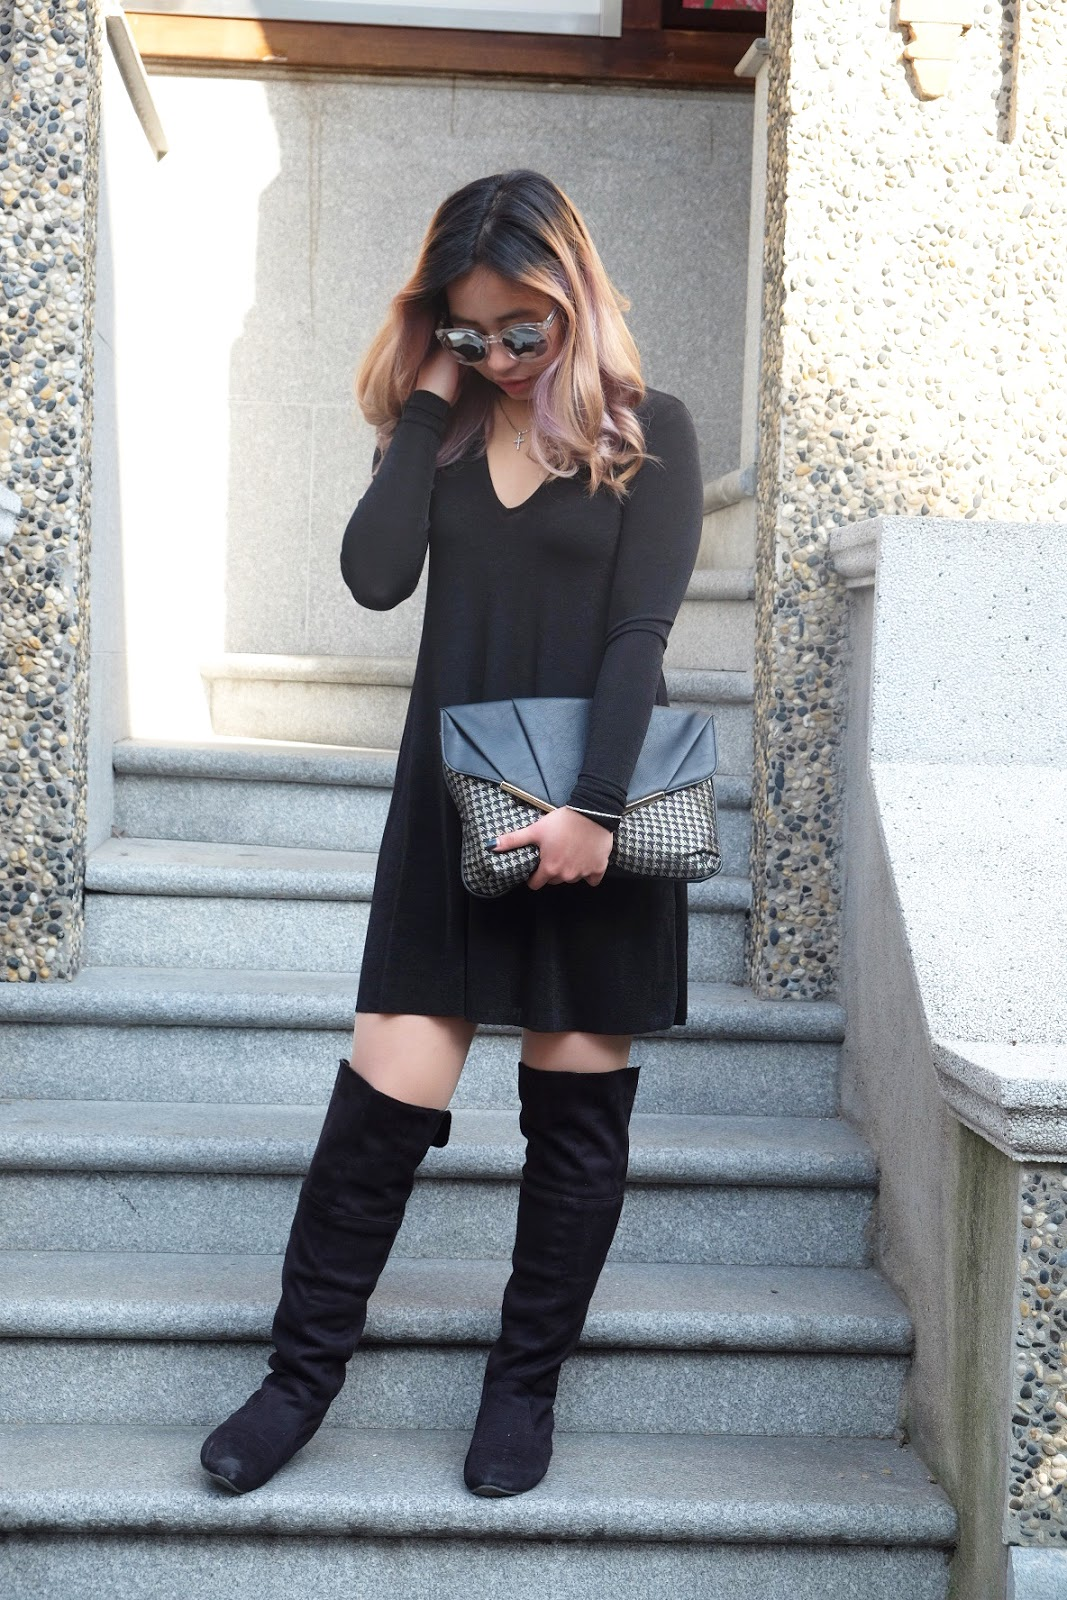 This is a photo of pairing overknee boots with dress by Sidney Scarlett from www.sidneyscarlett.com